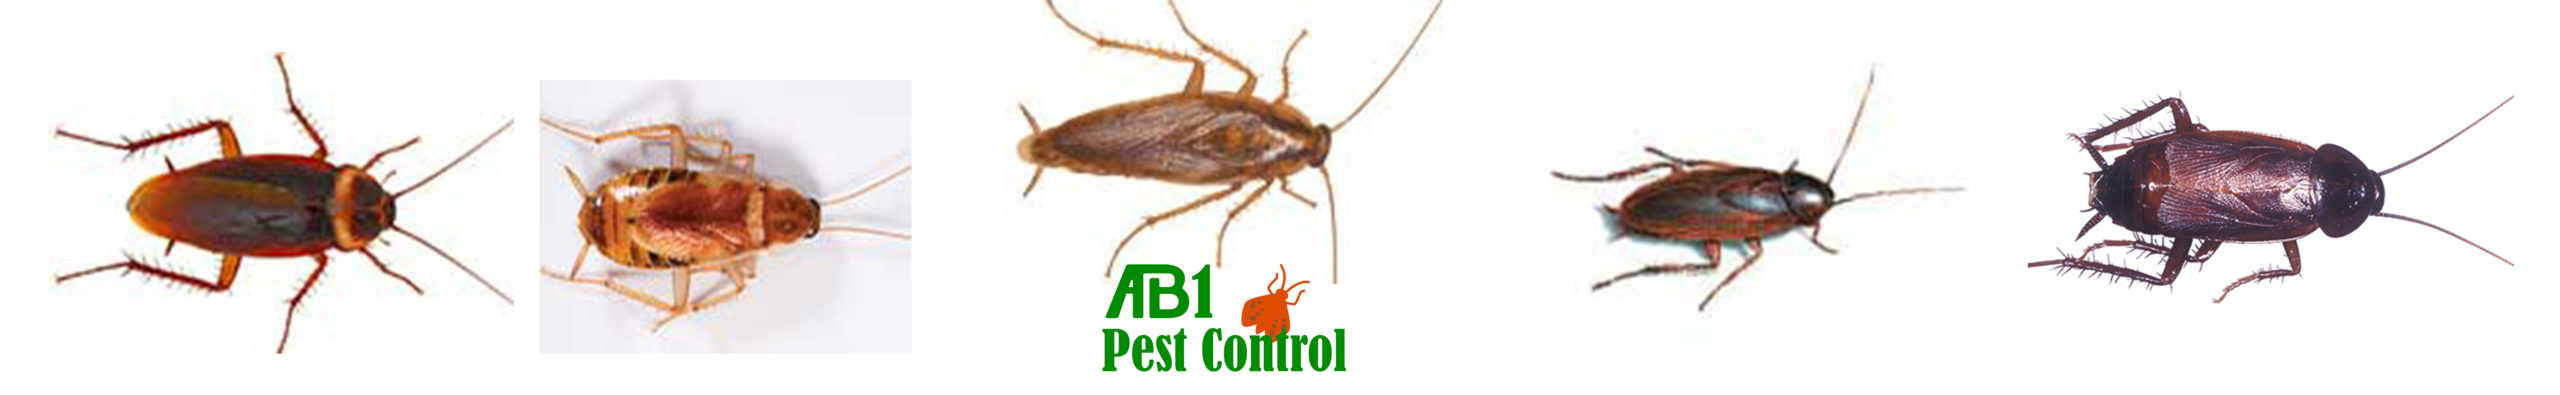 How to get rid of German cockroaches